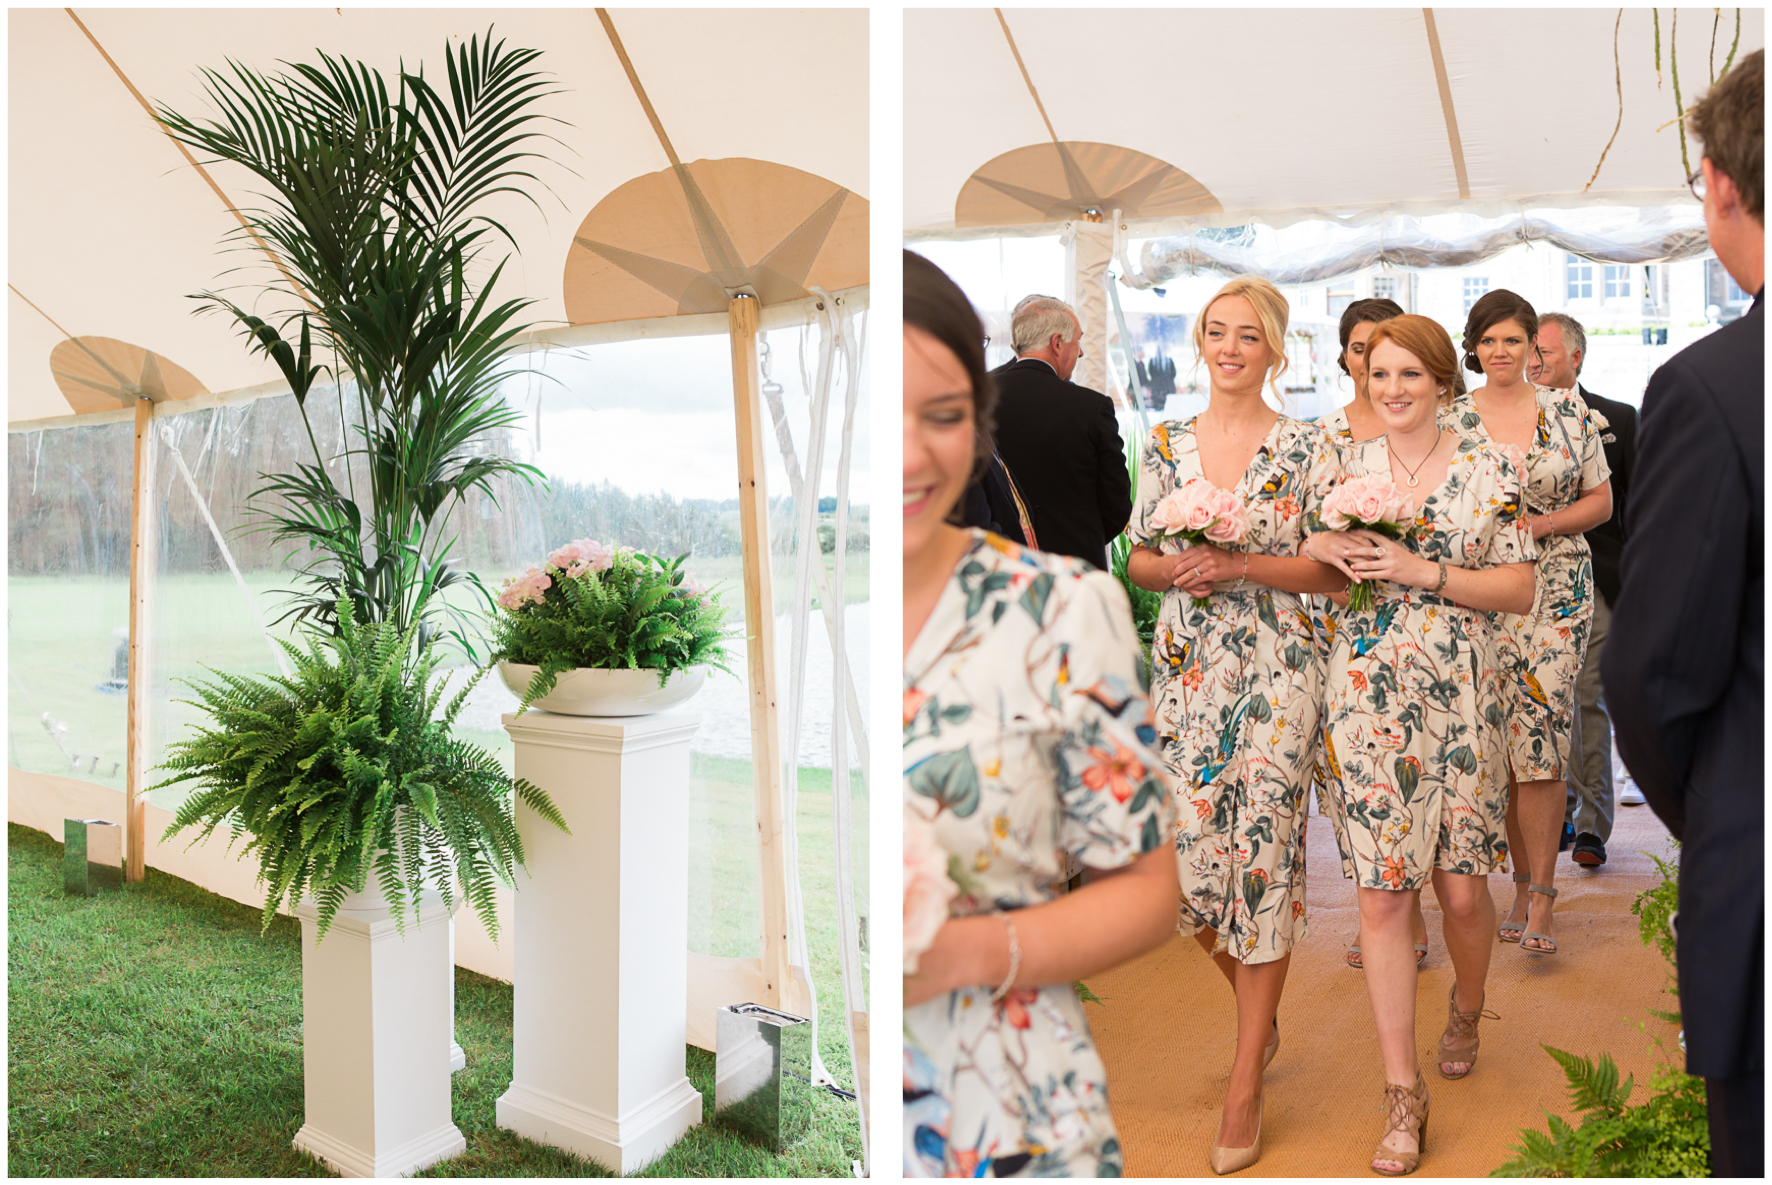 PapaKata sperry tent, ferns, bridesmaids